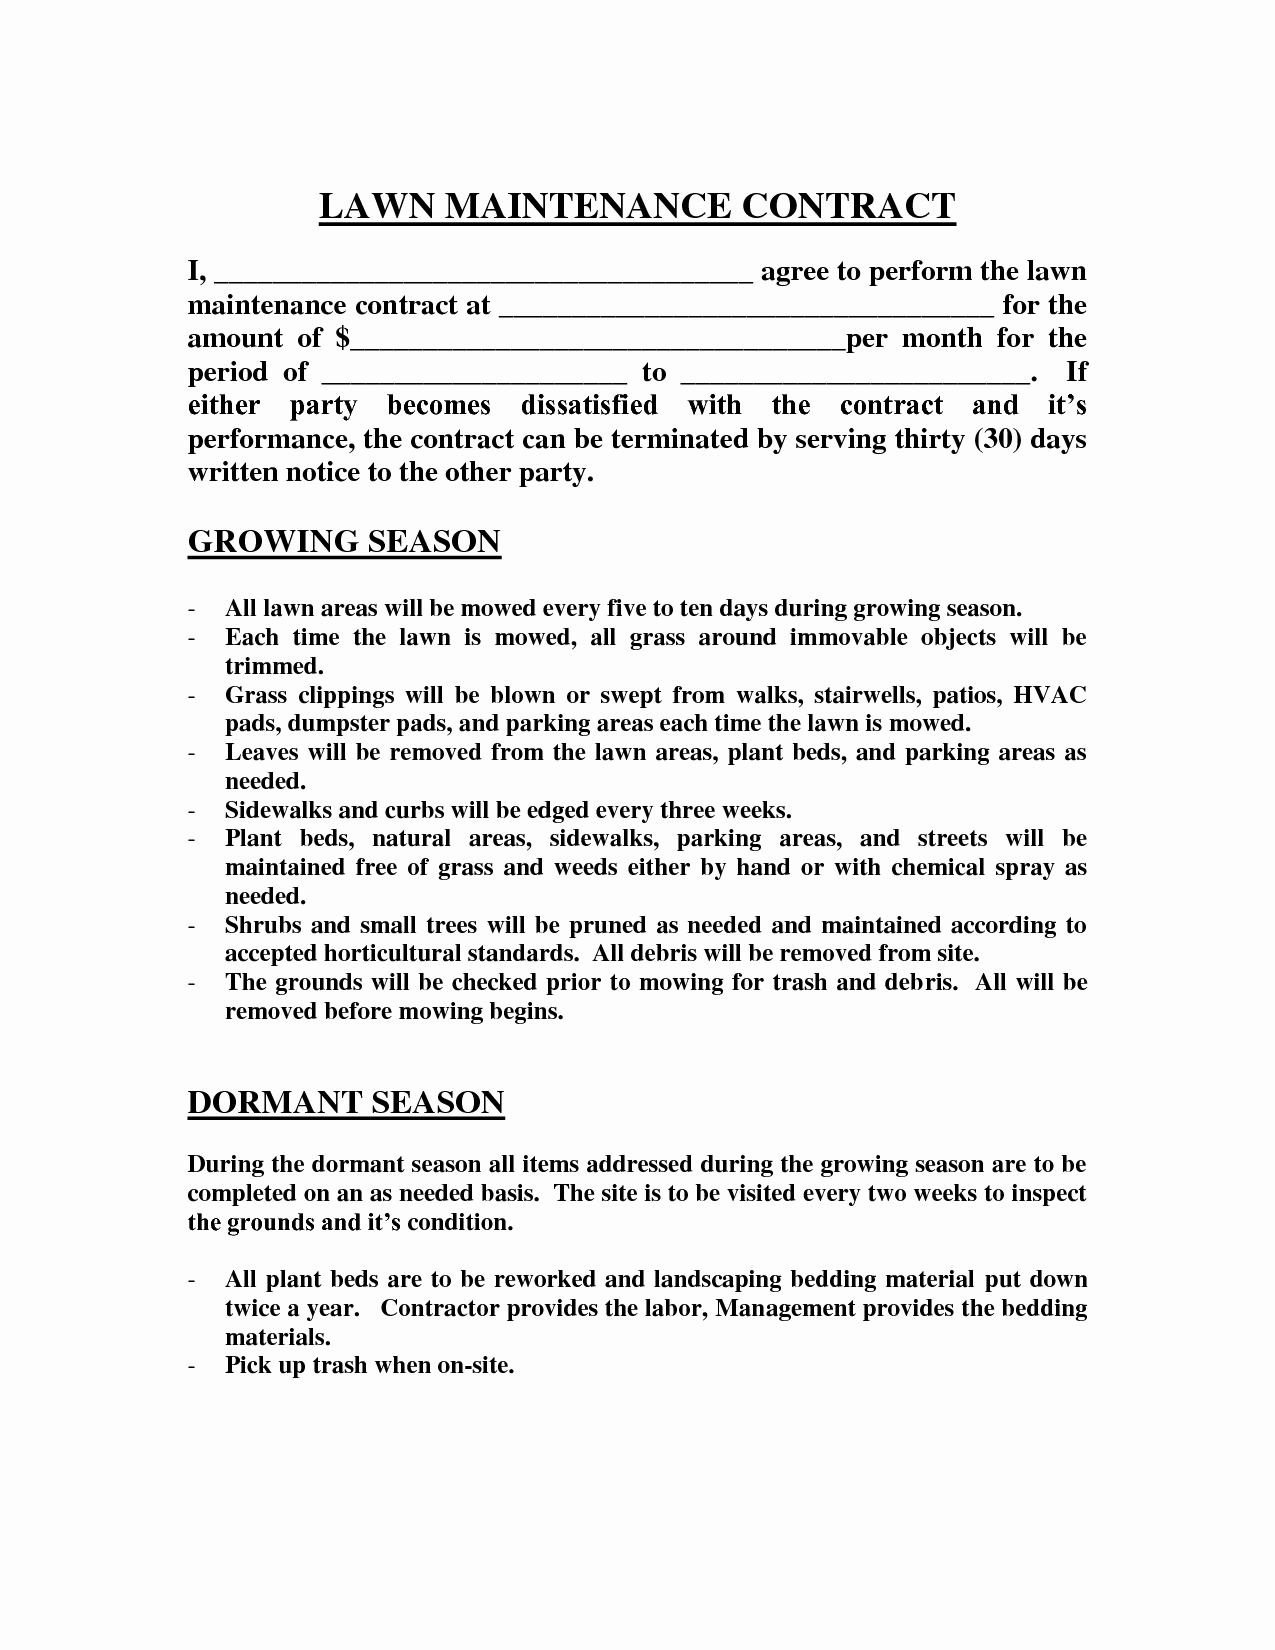 Commercial Lawn Care Bid Template Fresh Contract Lawn Care Contract Template Lawn Care Contract